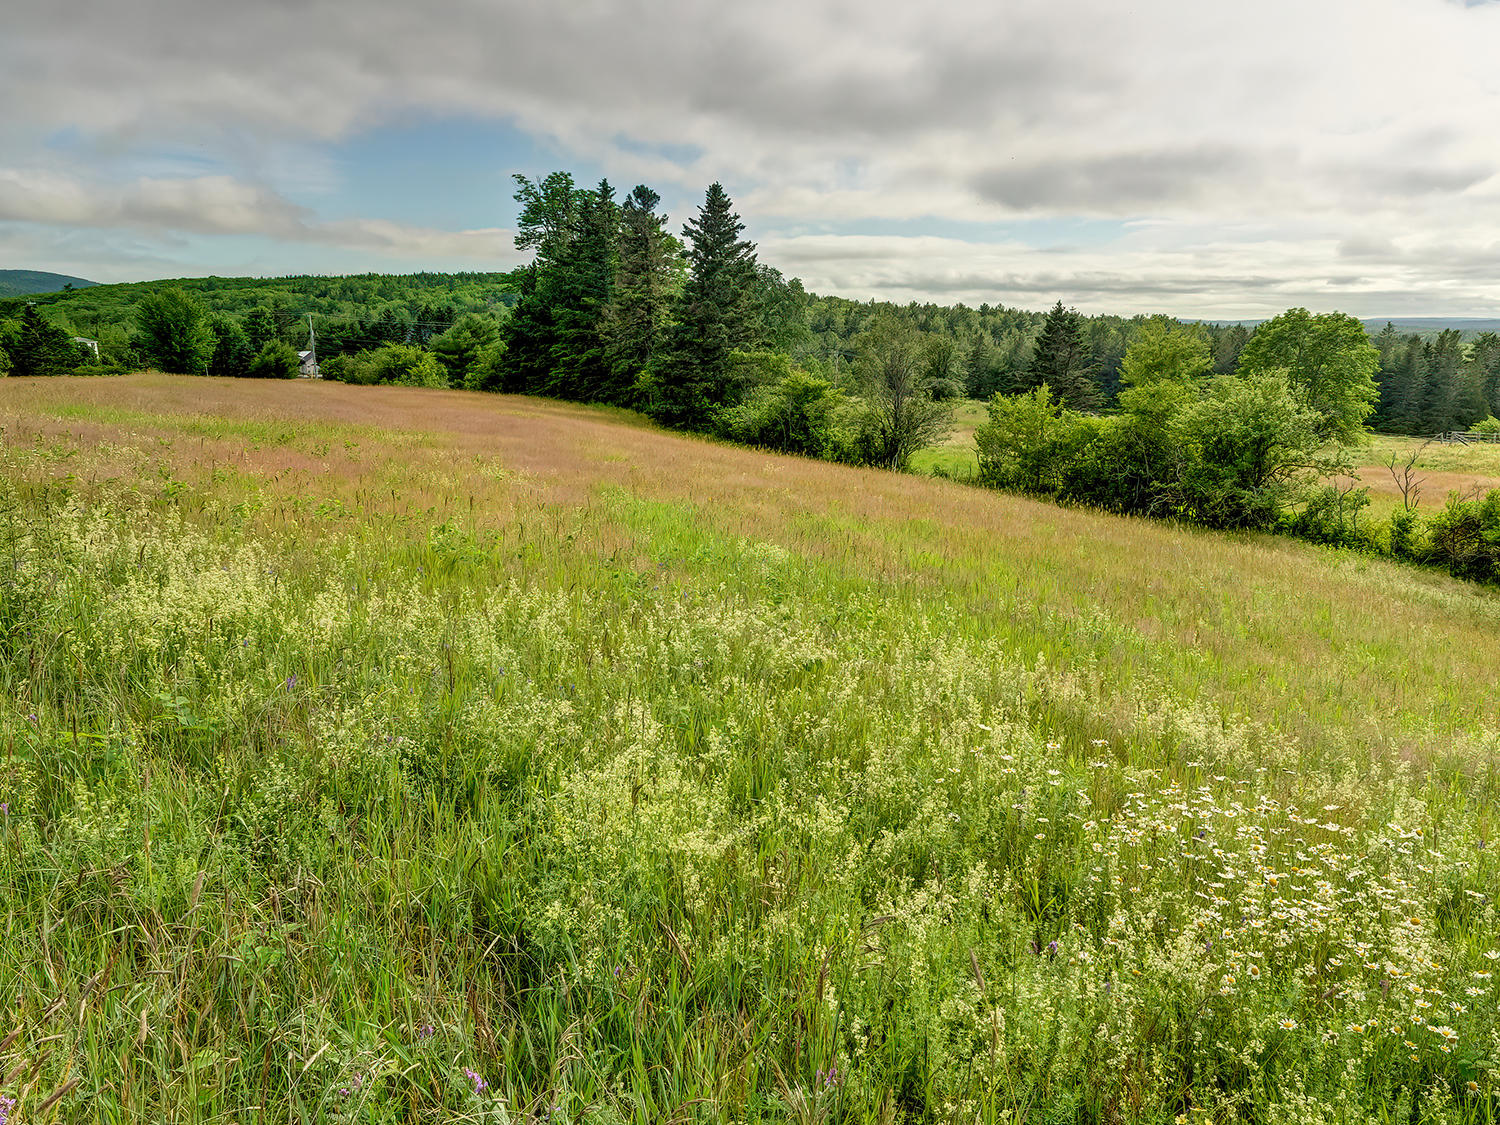 Meadow view